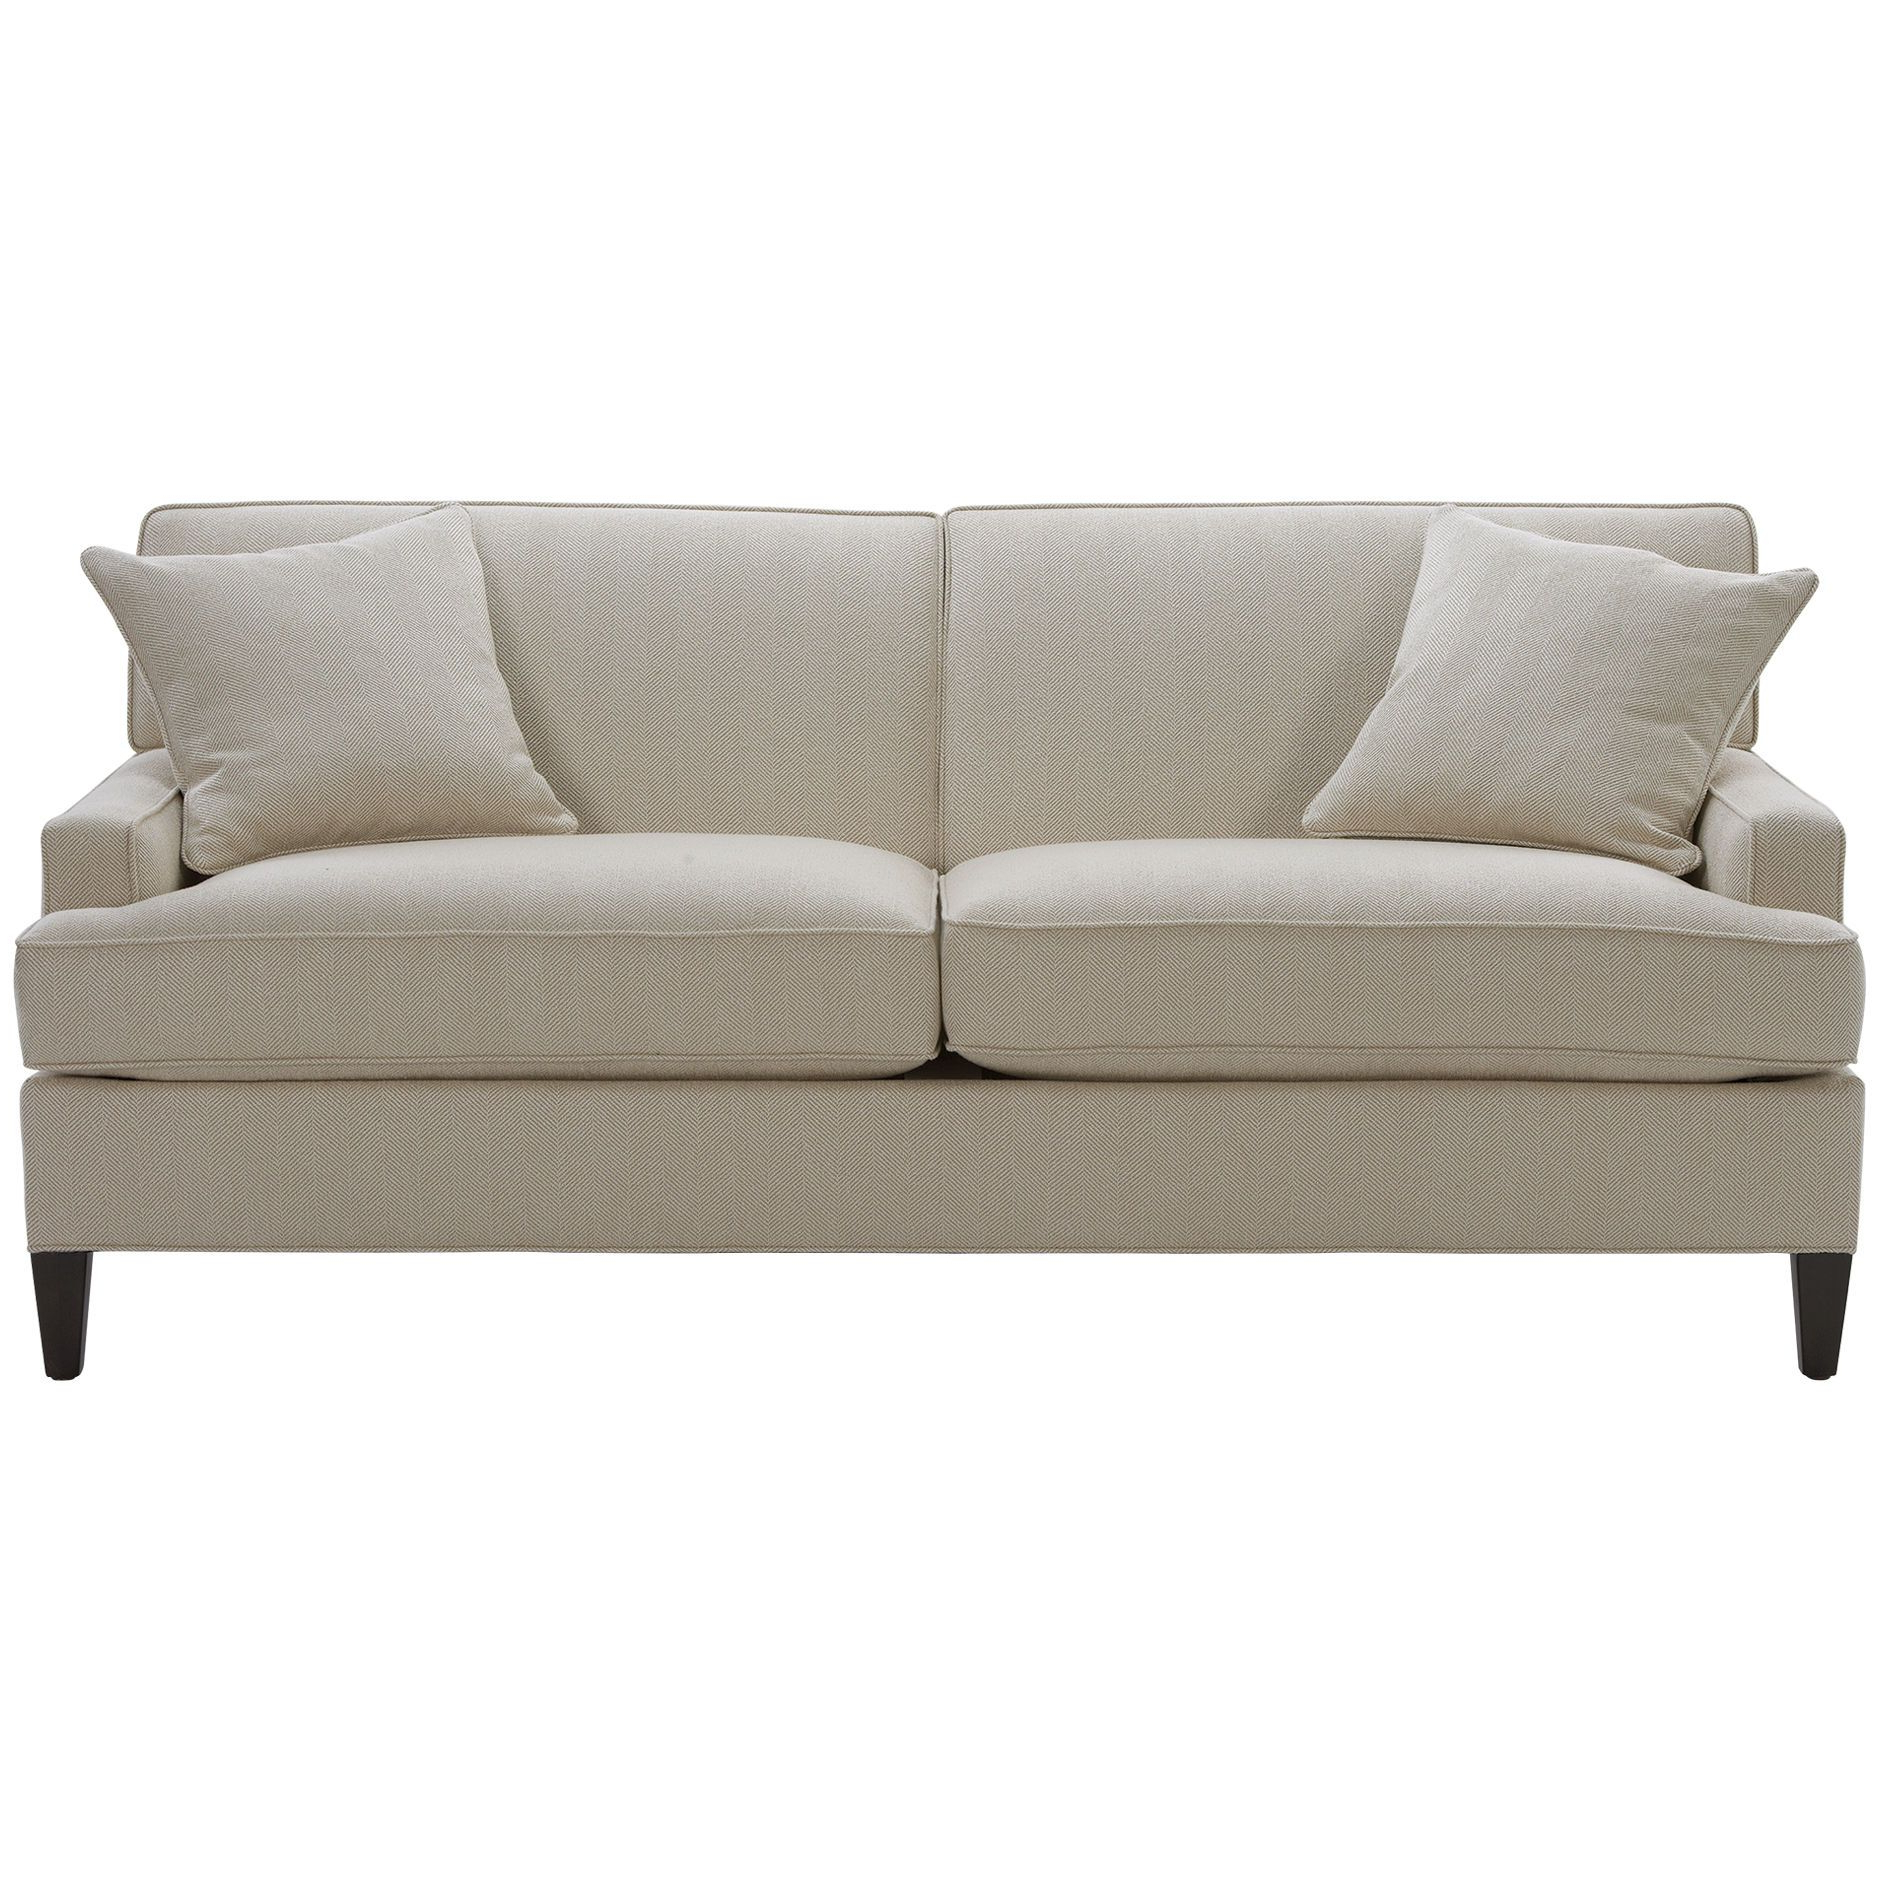 Bryant Sofa, Turner/ Oatmeal – Ethan Allen Us $1499 Add More With Regard To Widely Used Bryant Loveseats With Cushion (View 10 of 20)